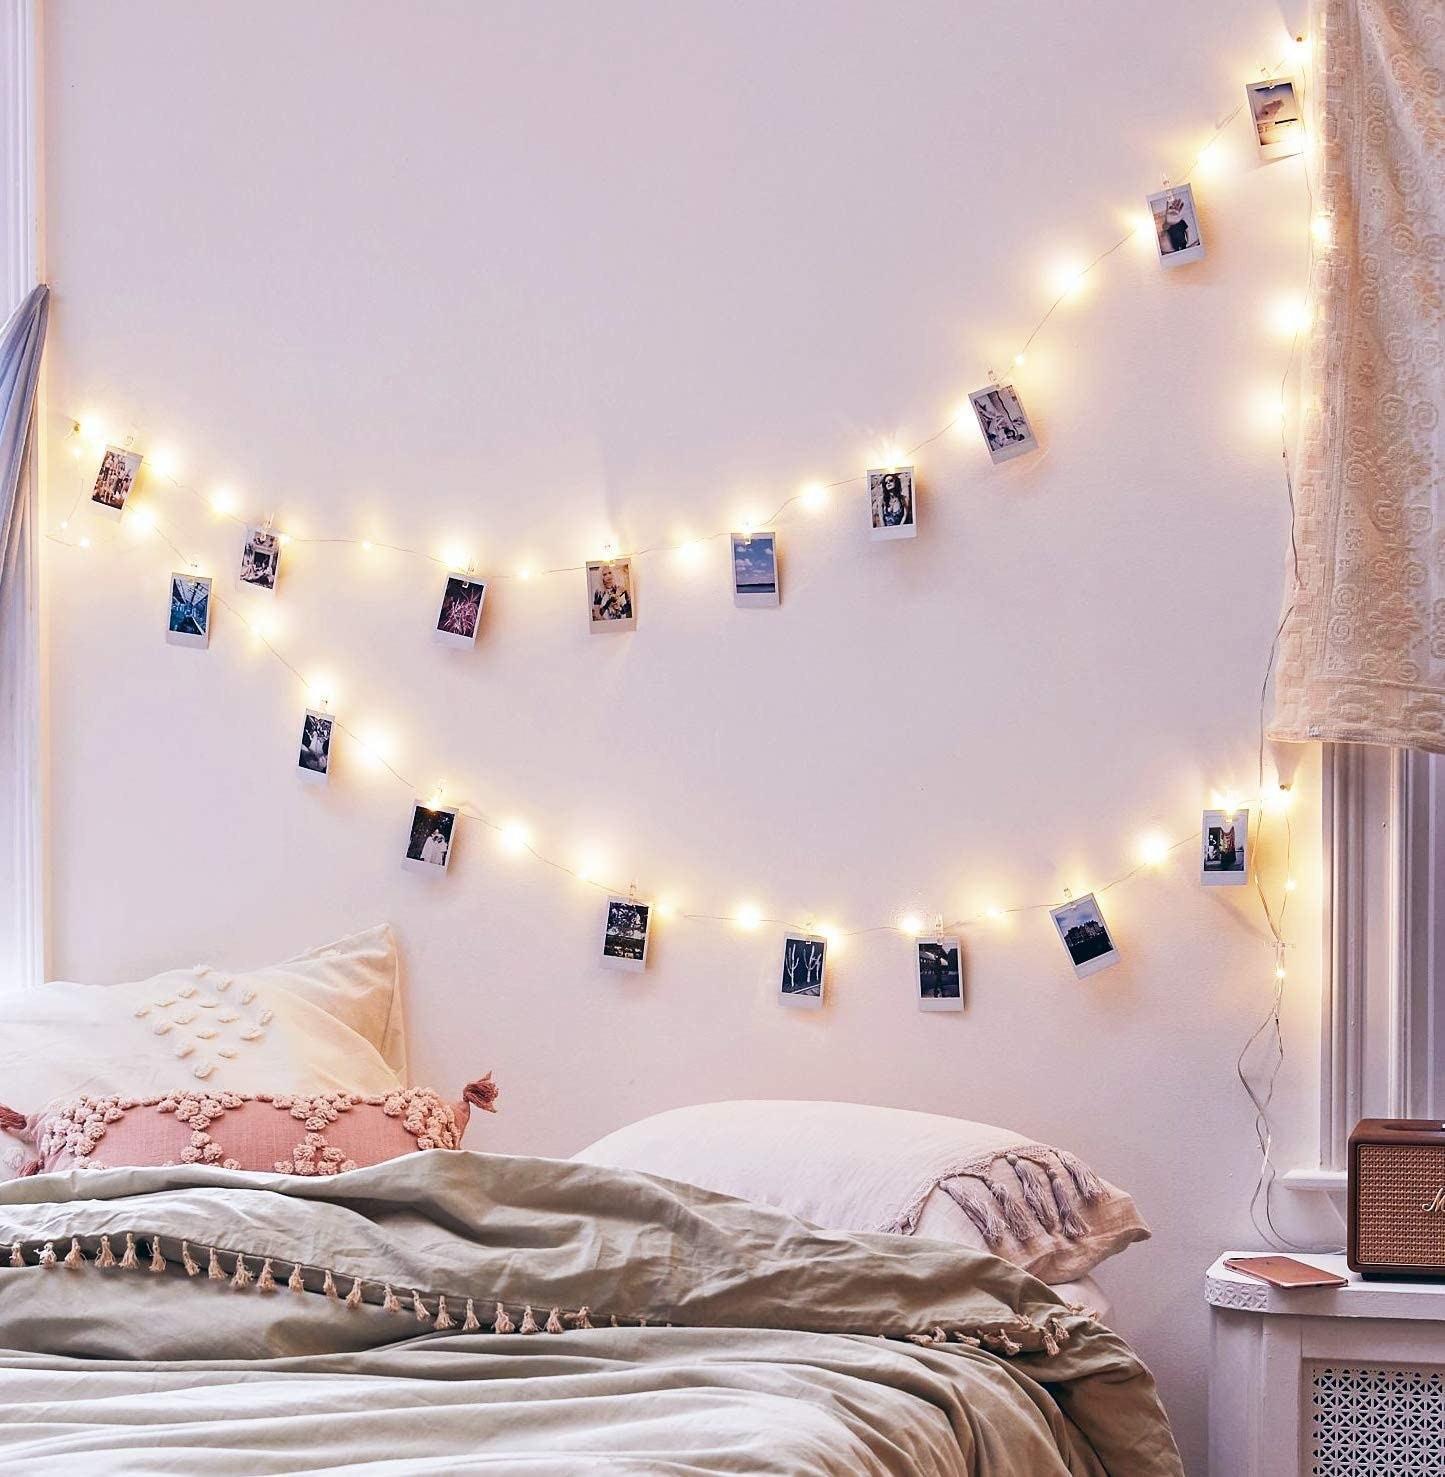 Two strings of fairy lights hanging on a wall There are small instant photos hanging from the string